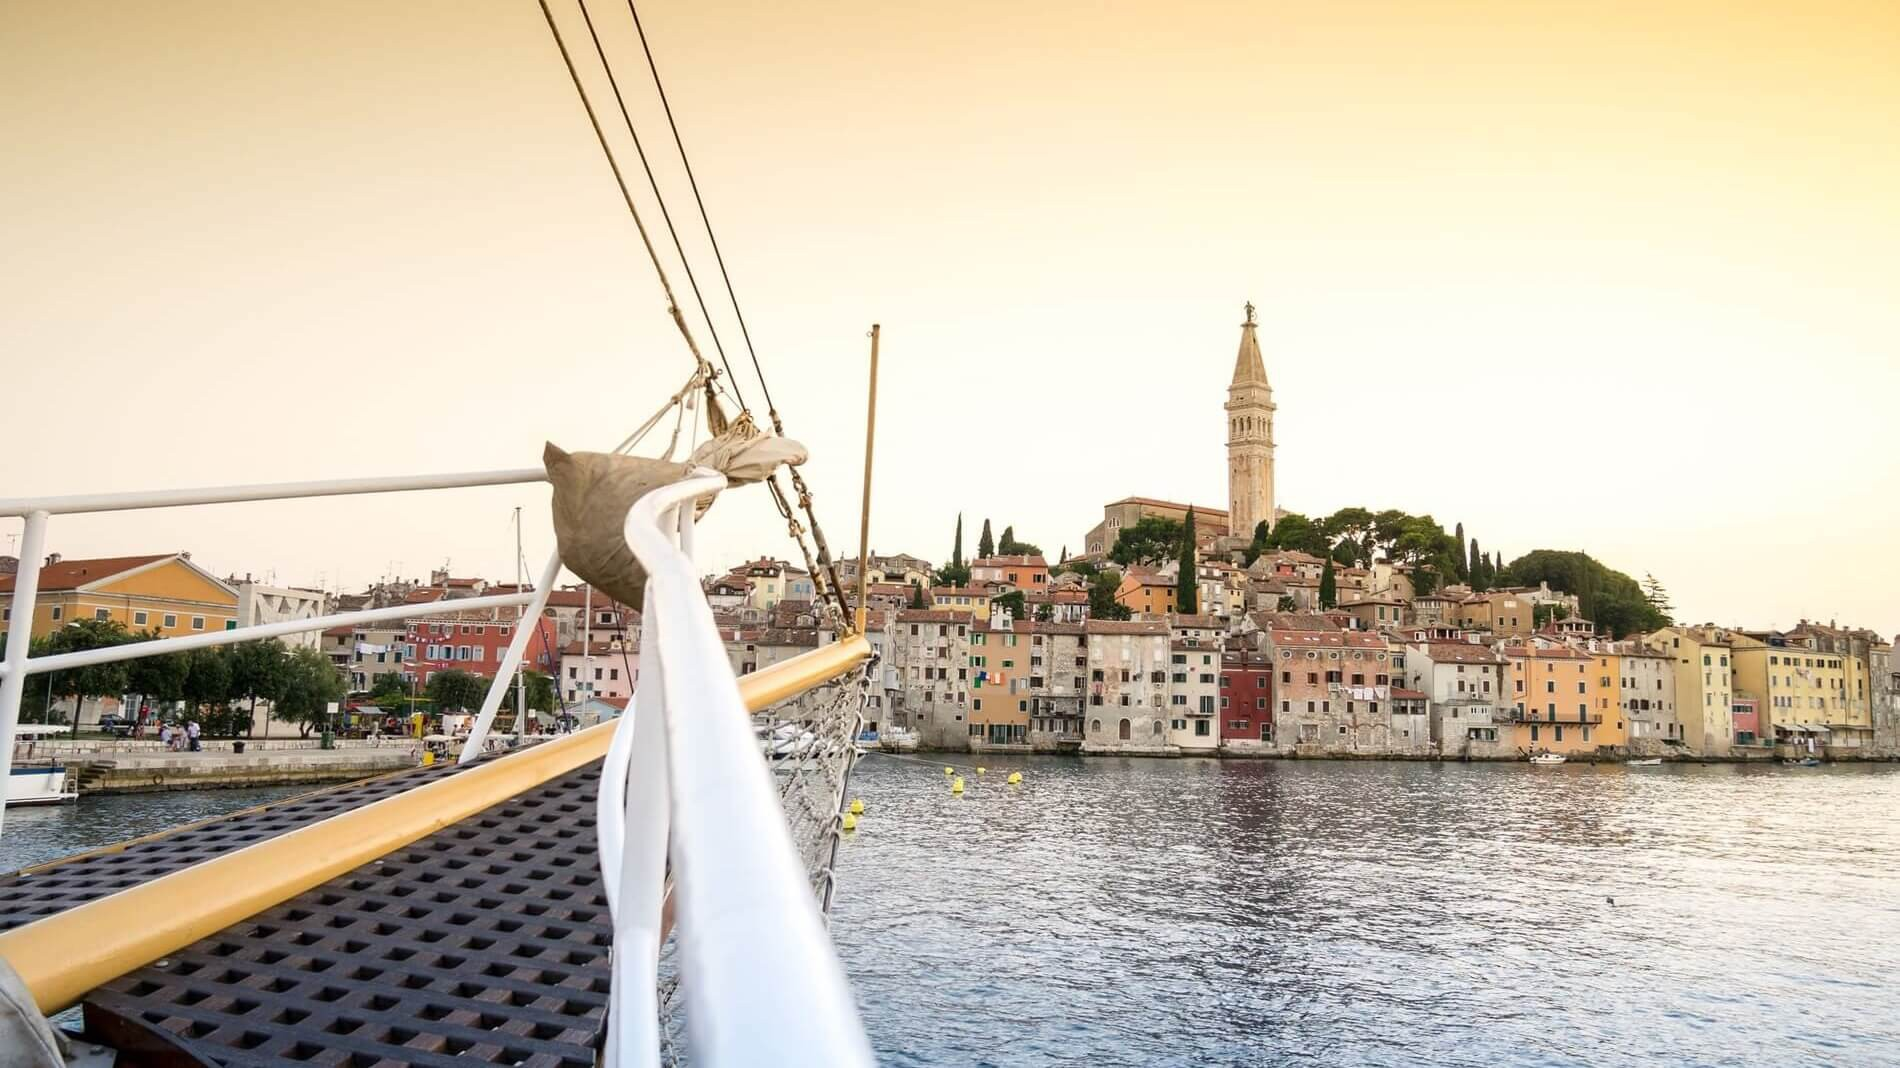 Rovinj - Adriatic Sea | Croatia Cruise Croatia Cruise